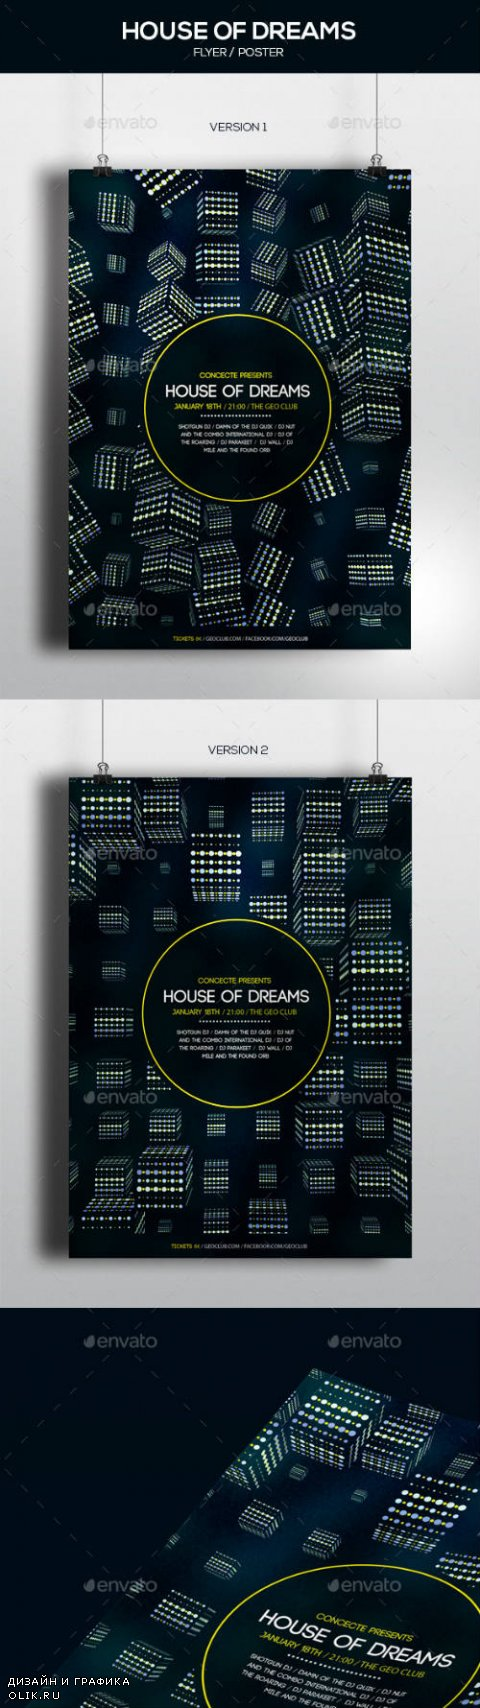 House of Dreams Party Poster / 2 Versions 10012135